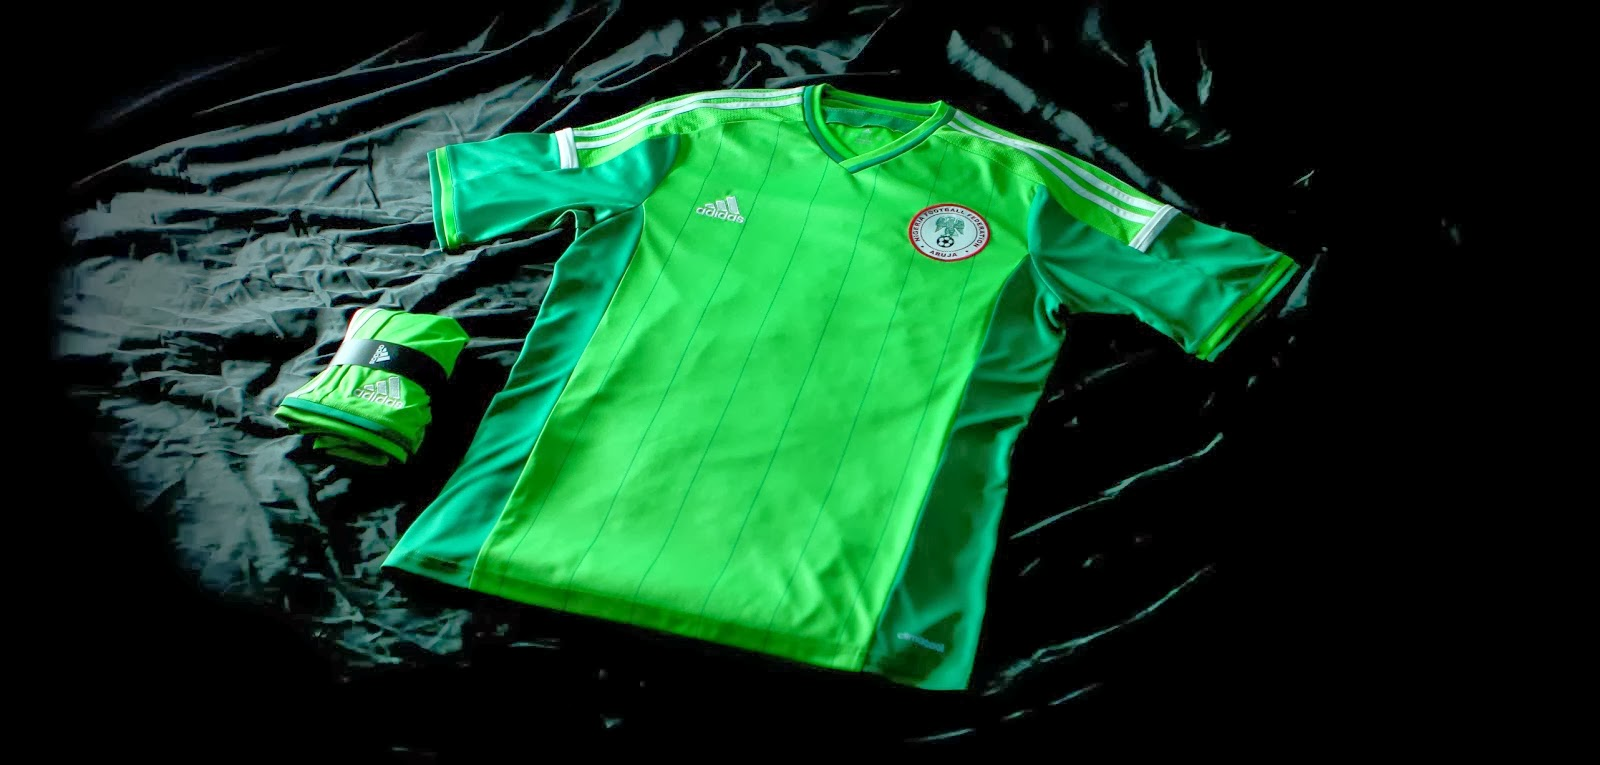 competitive price d904c e9b3c Pro Soccer: adidas Launches New Nigeria National Team Kits